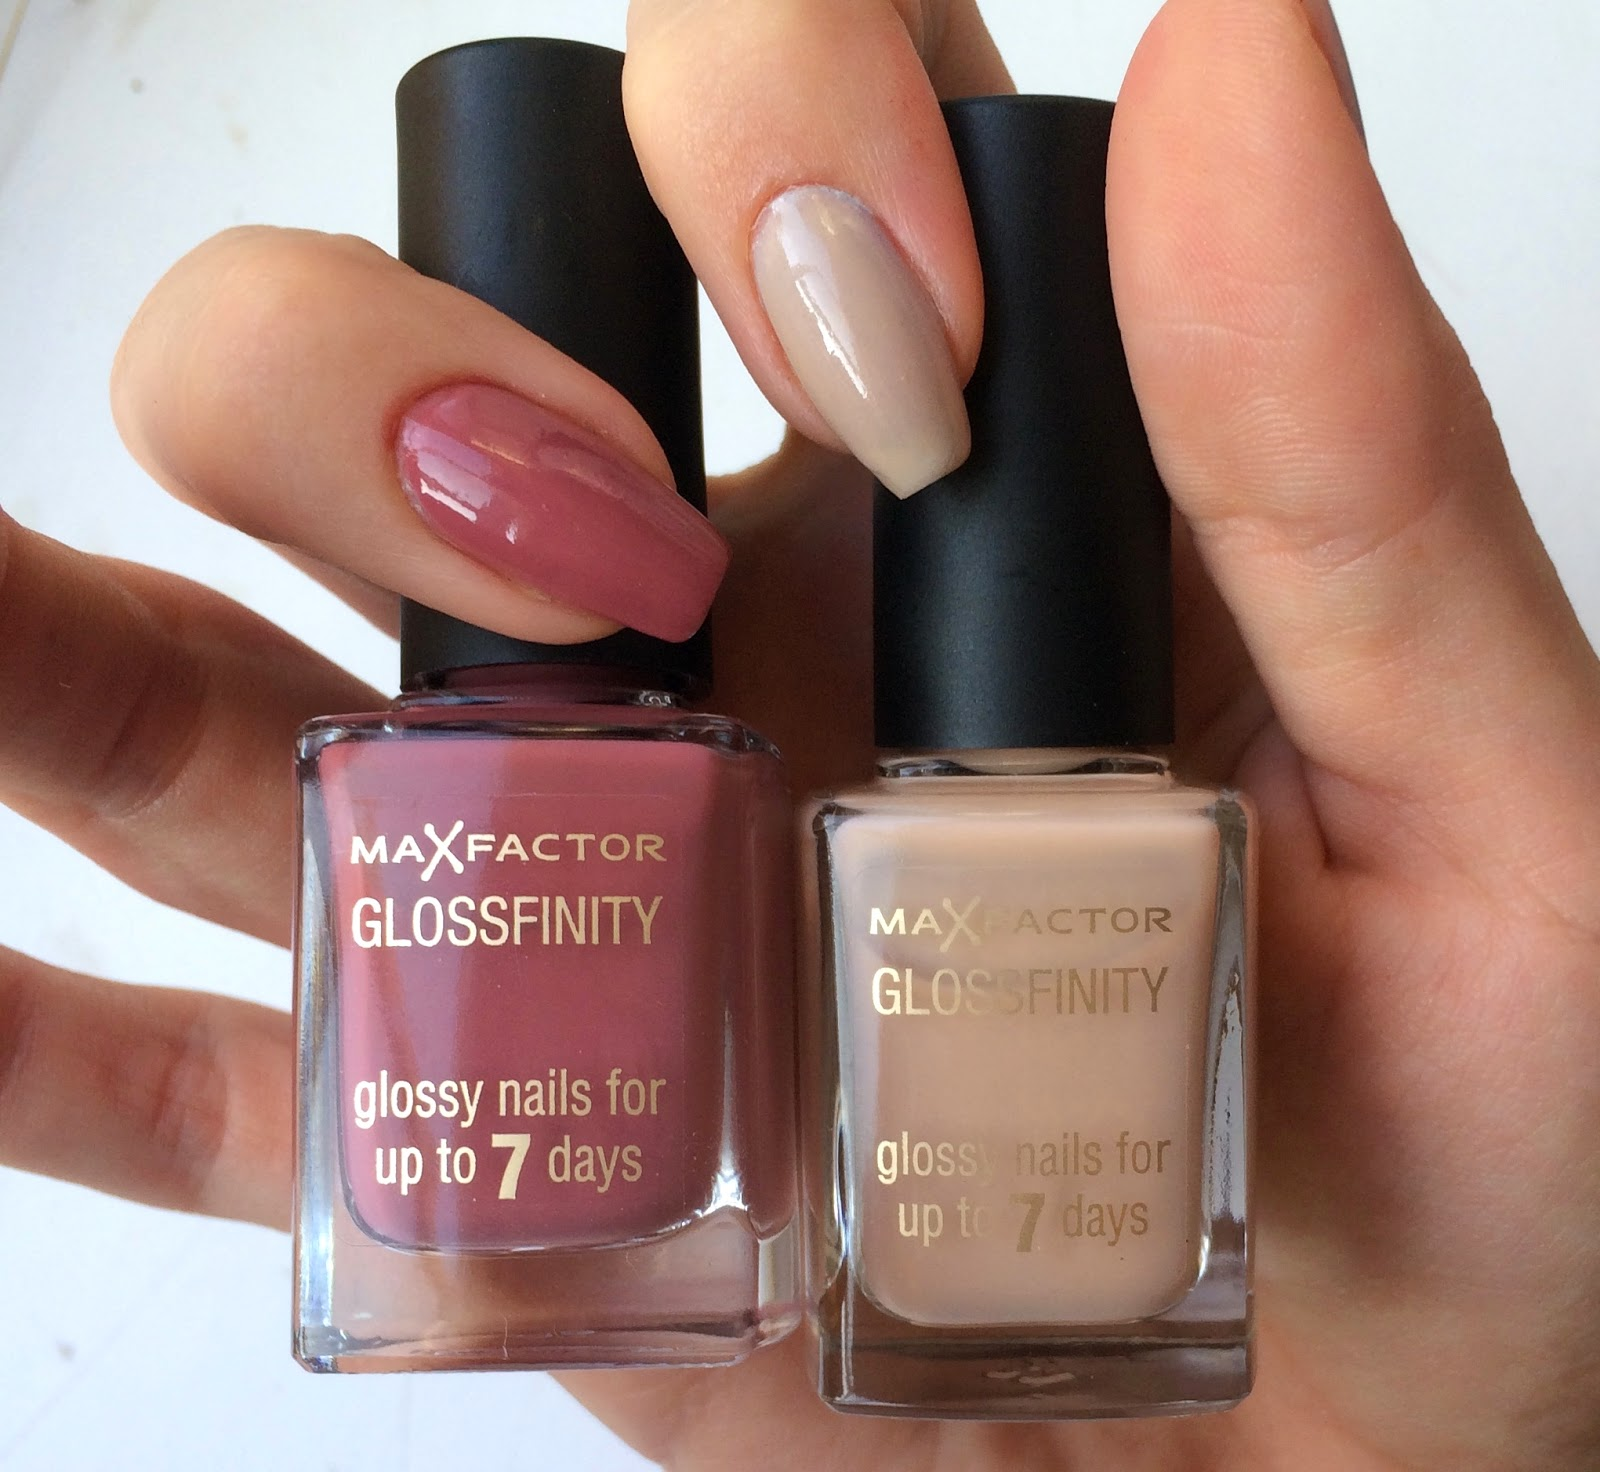 max-factor-glossfinity-candy-rose-desert-sand-on-nails-swatches